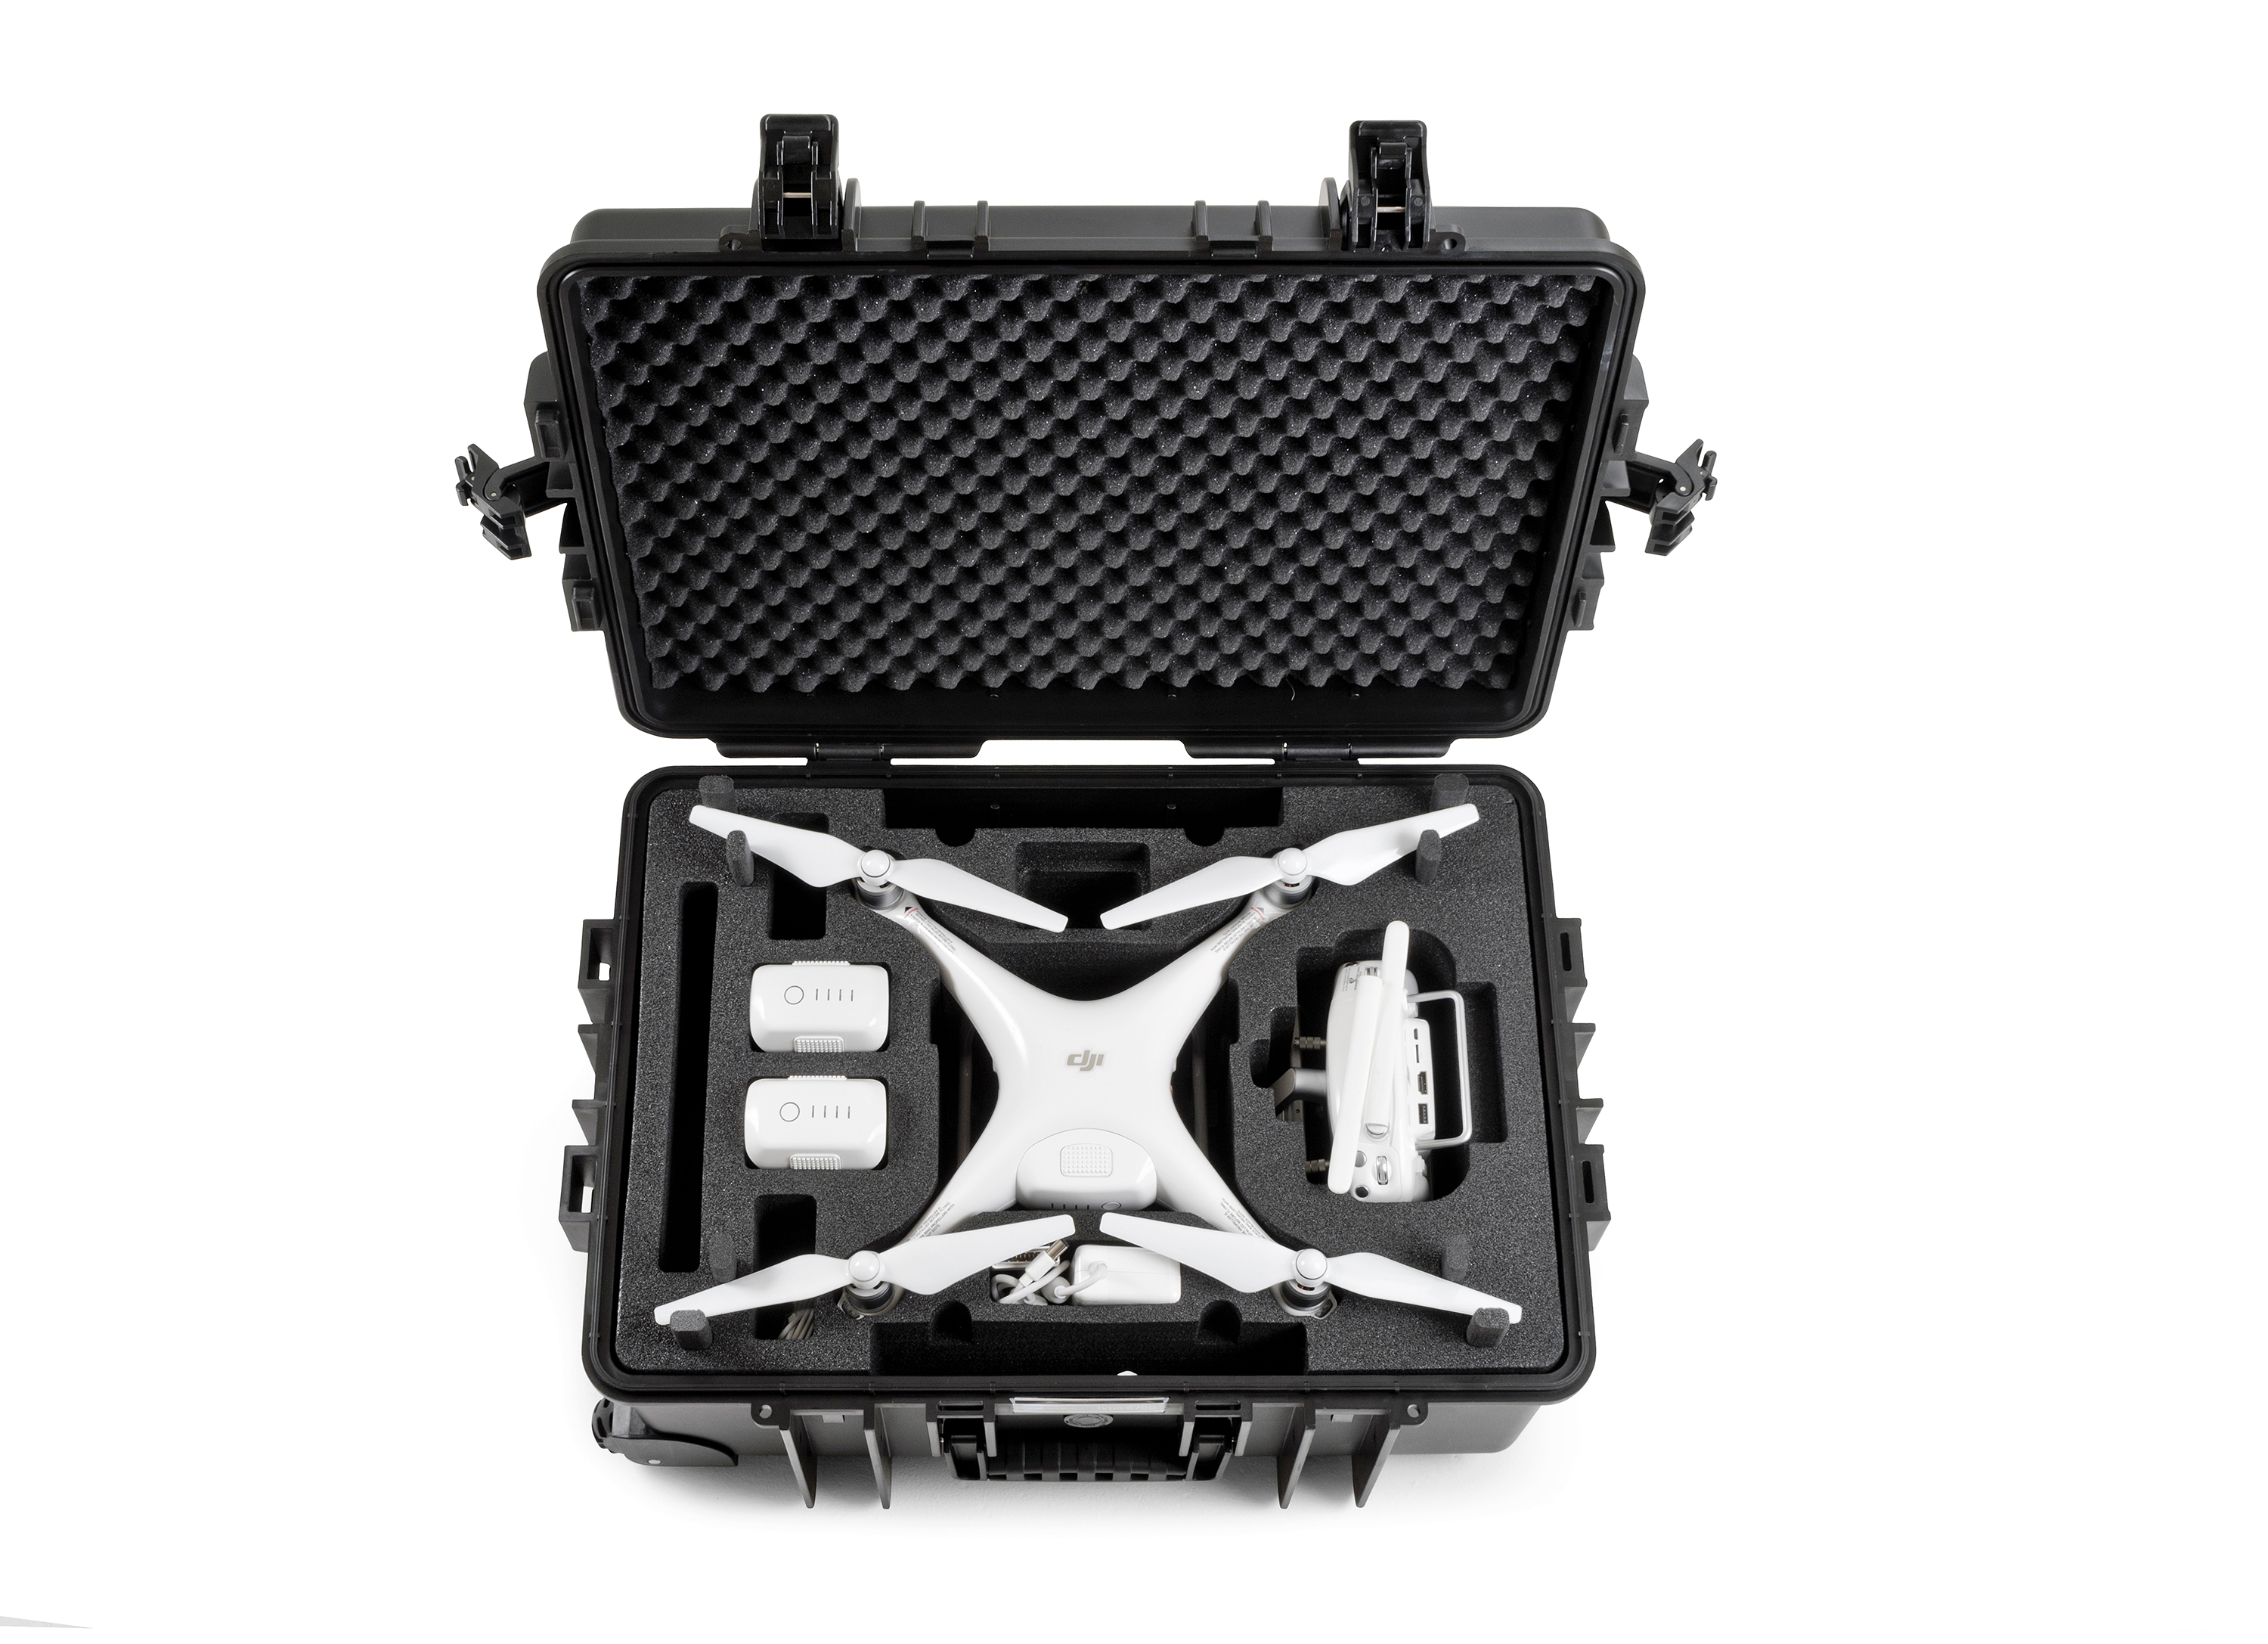 type 6700 DJI4 / 4 Pro / 4 Pro Plus / 4 advanced / 4 Obsidian